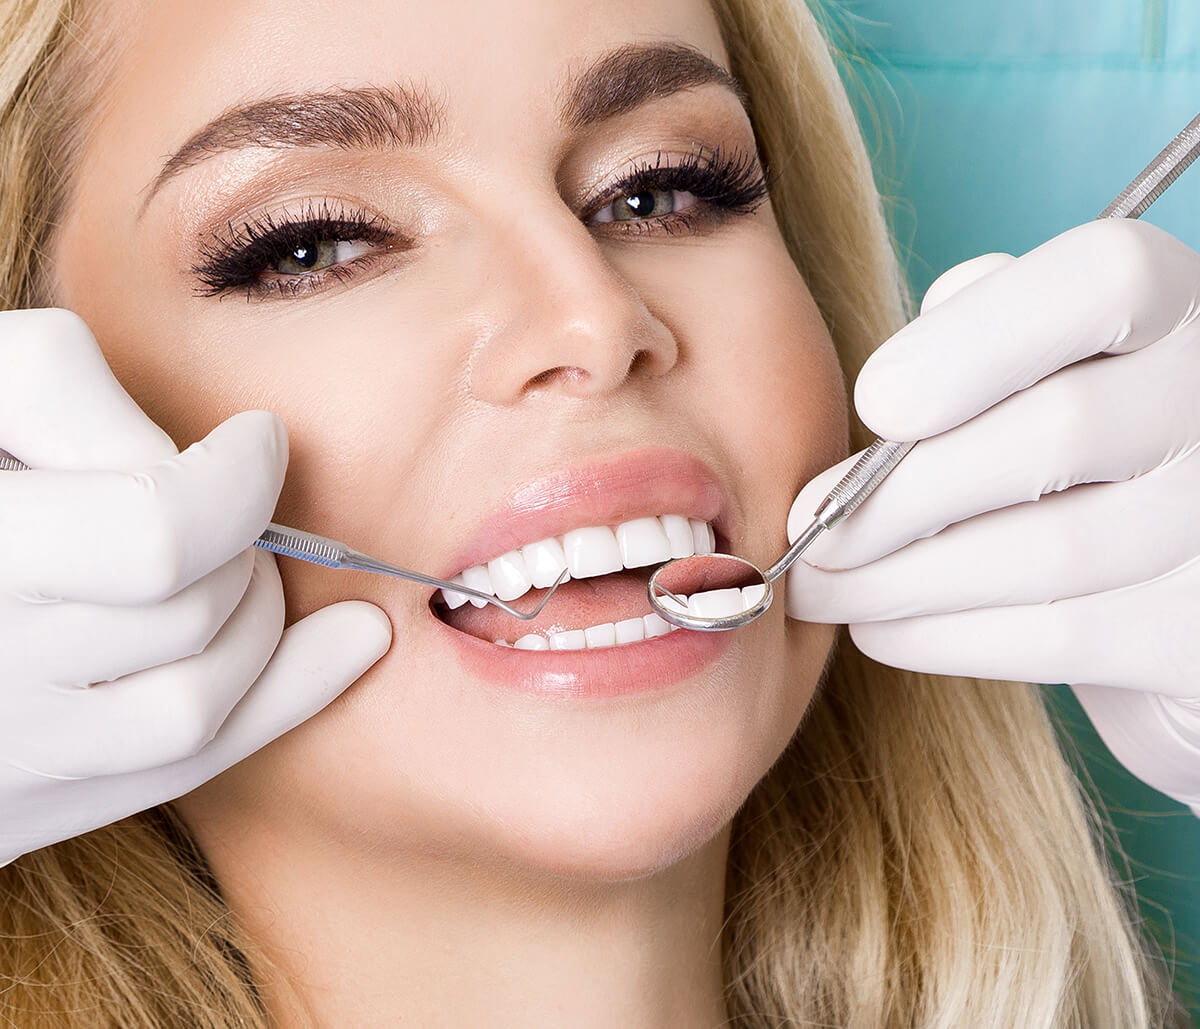 Teeth Cleaning Dental Care at Bright Smiles Dental Studio in Glendale CA Area